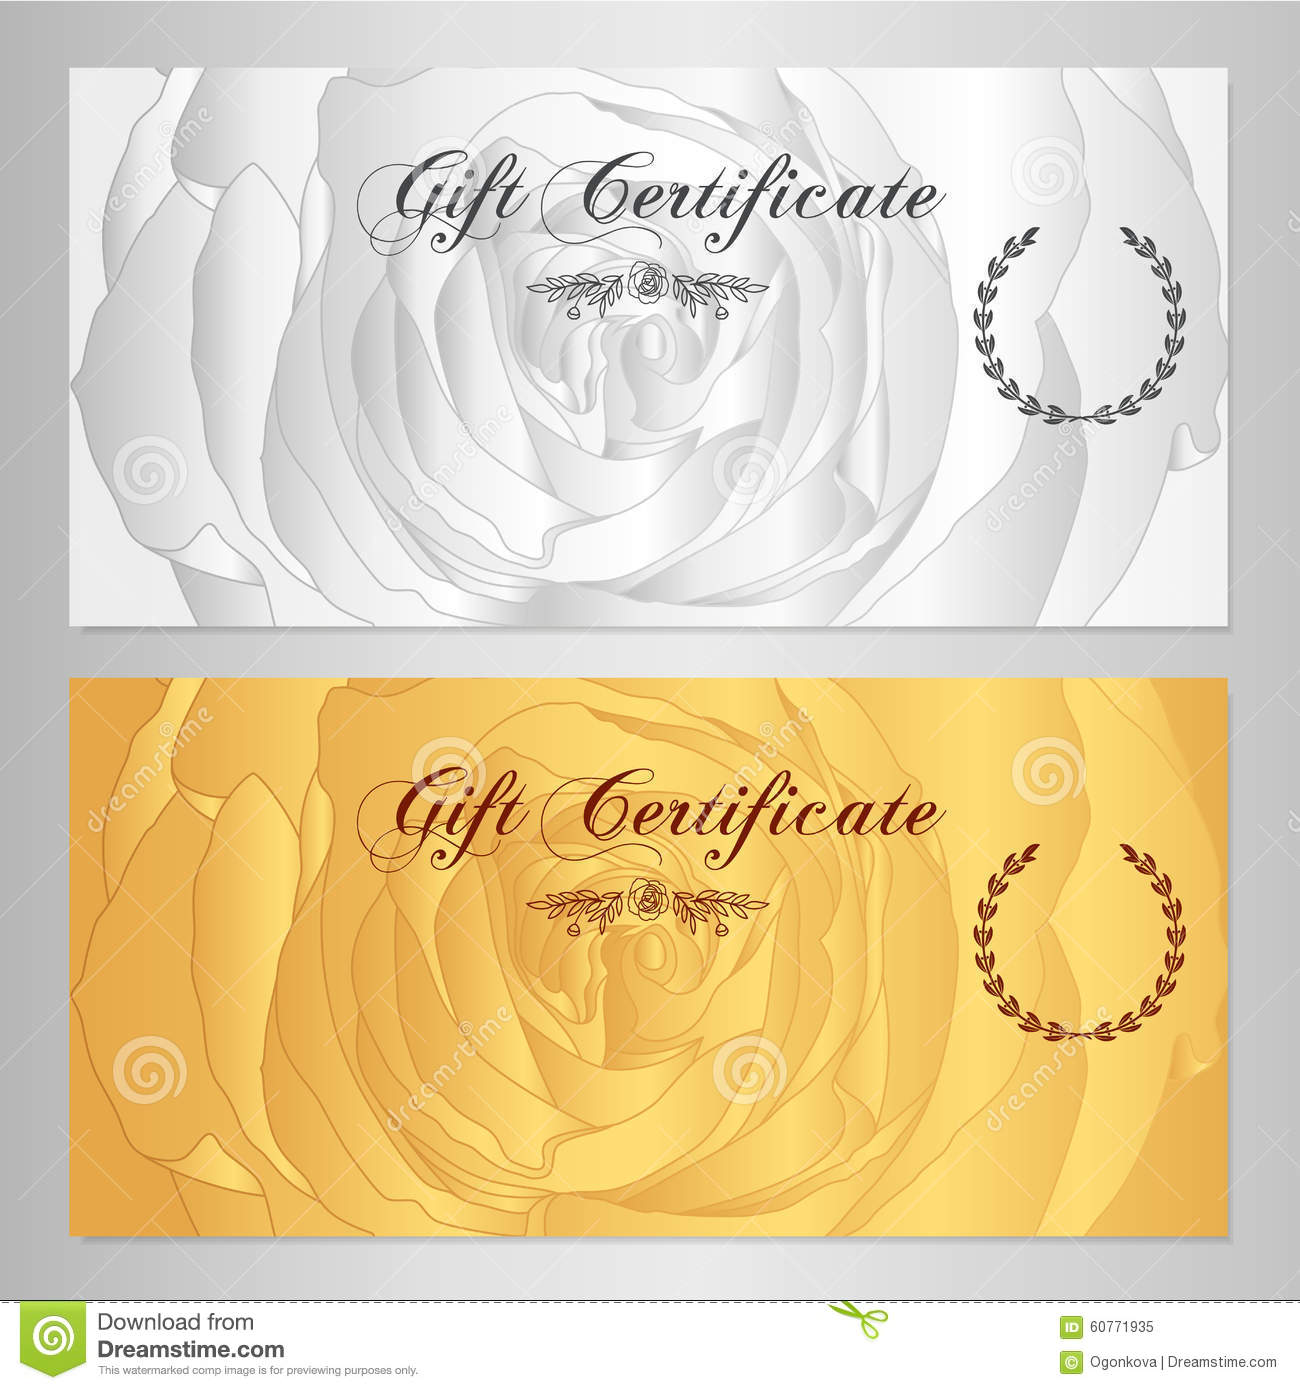 Gift Certificate Voucher Coupon Reward Gift Card Template With